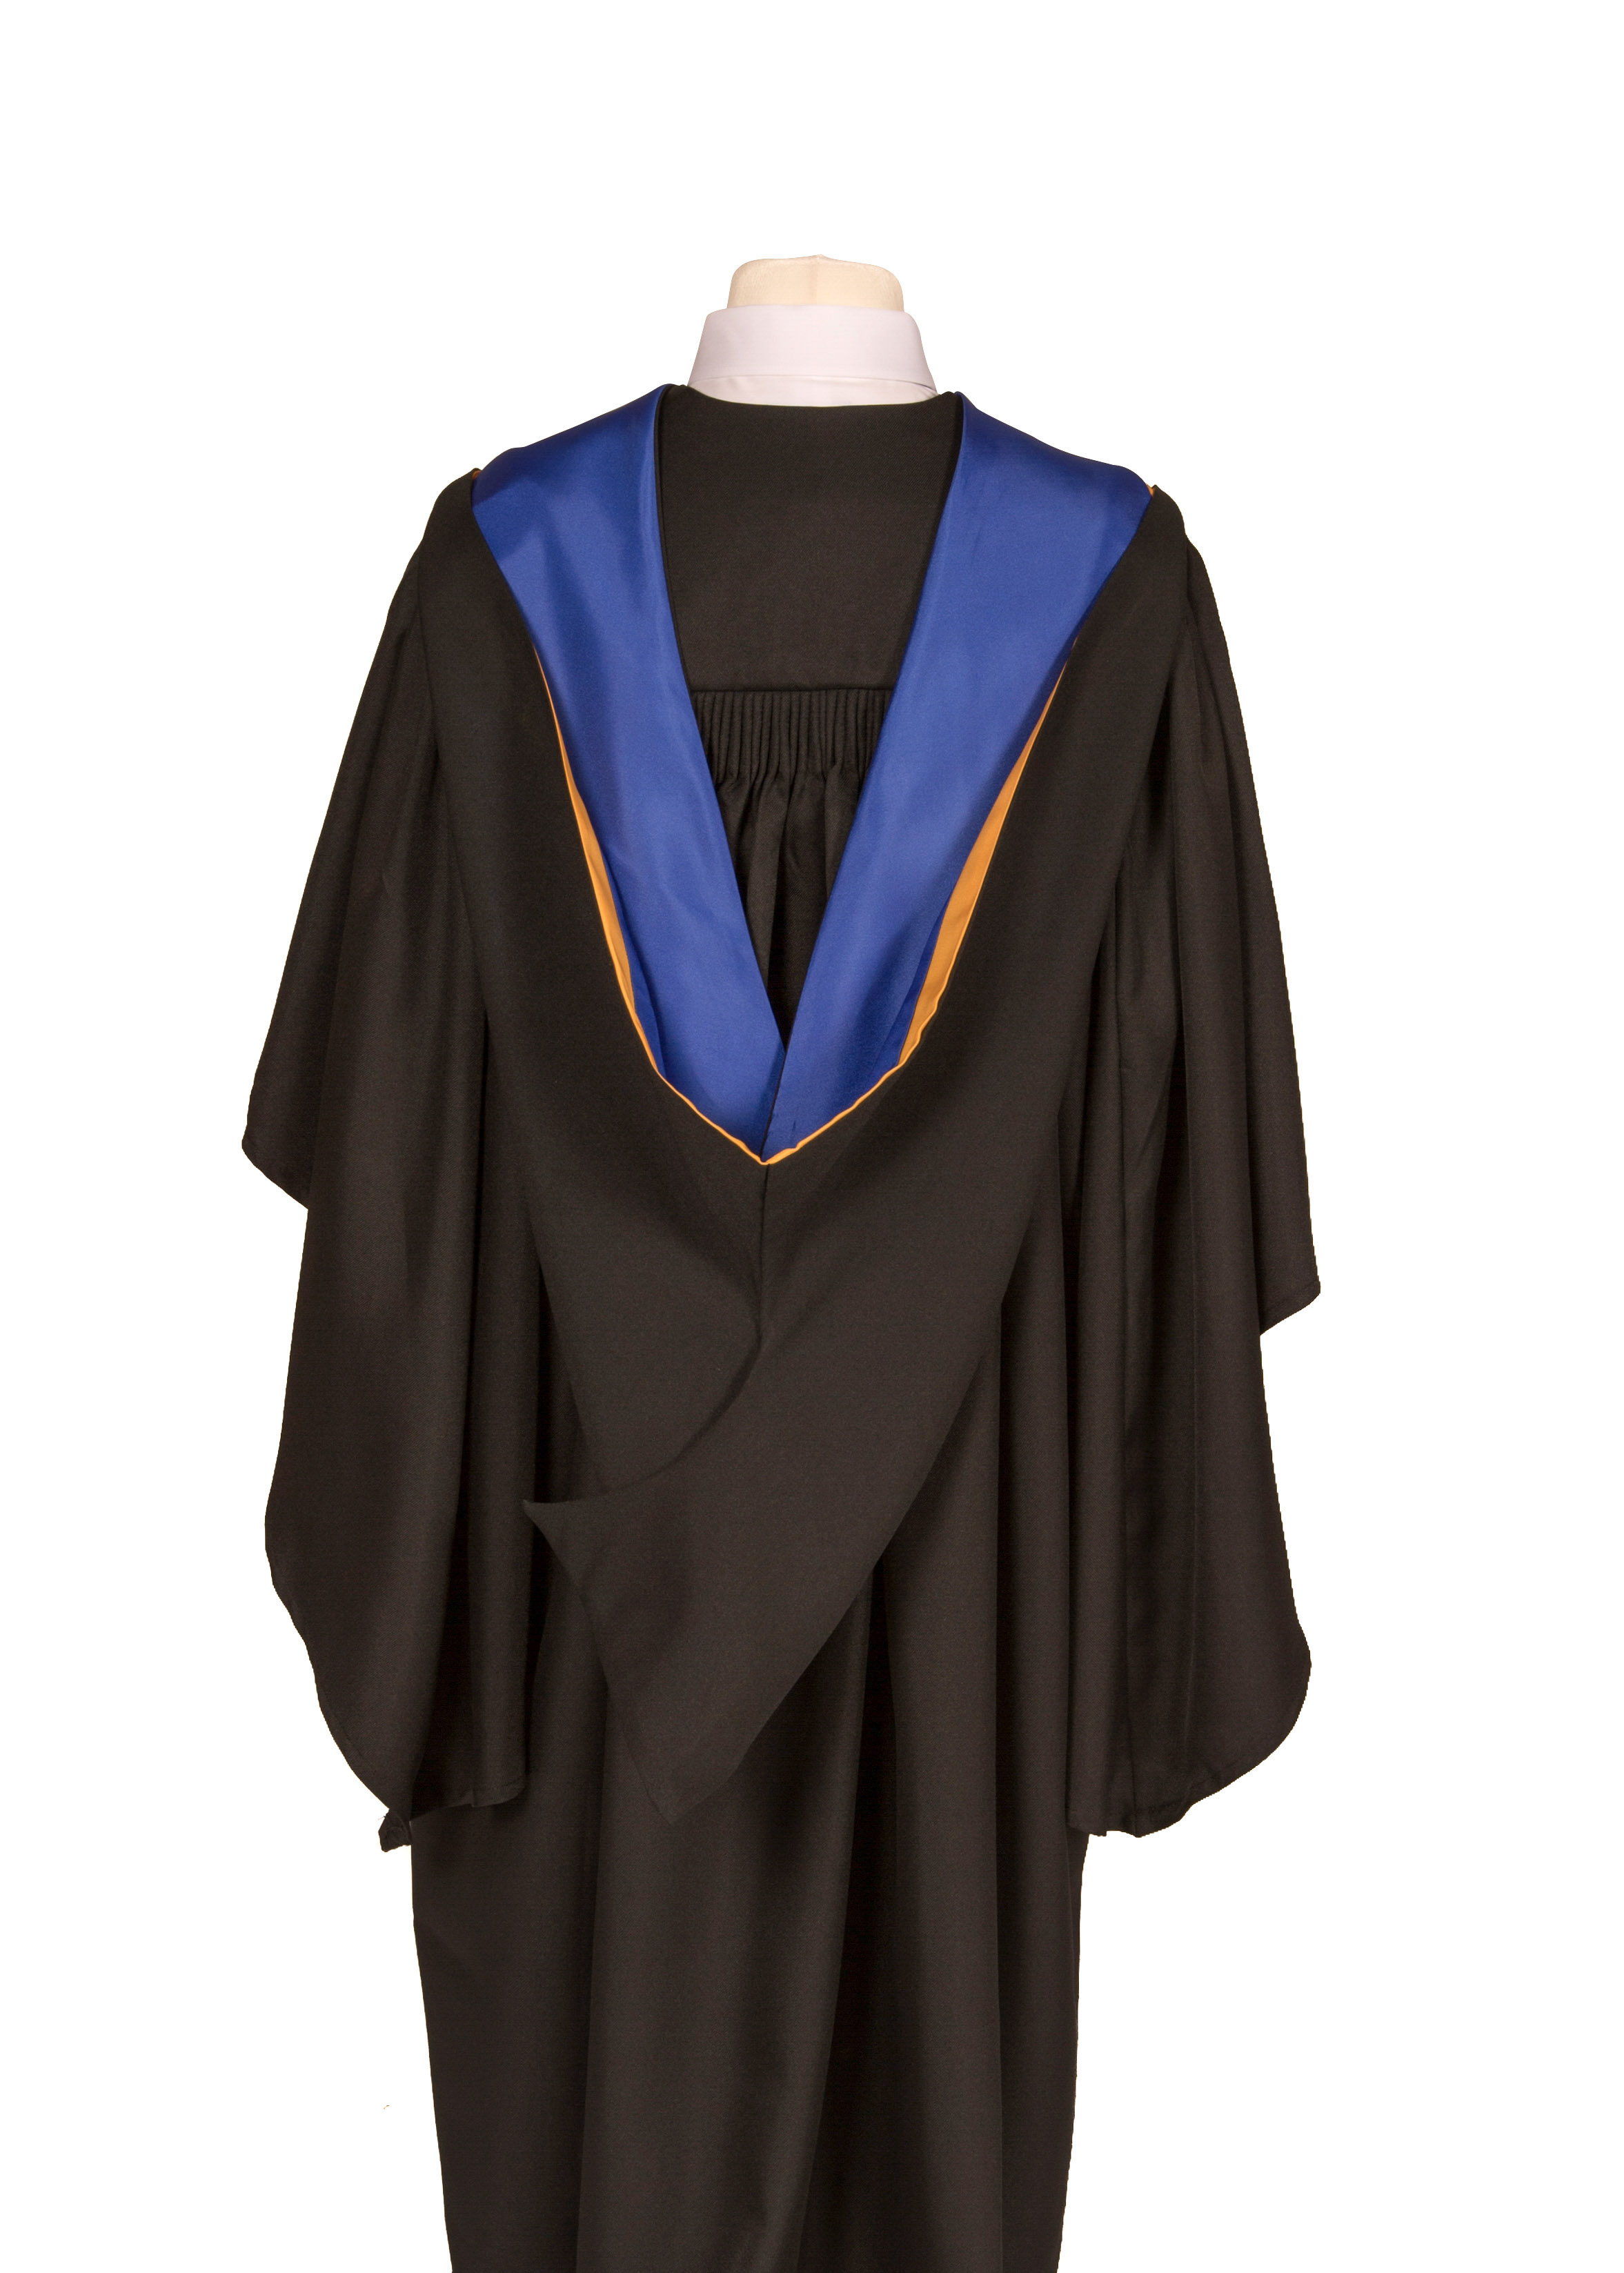 Academic Hood Graduation Gowns Graduation Attire